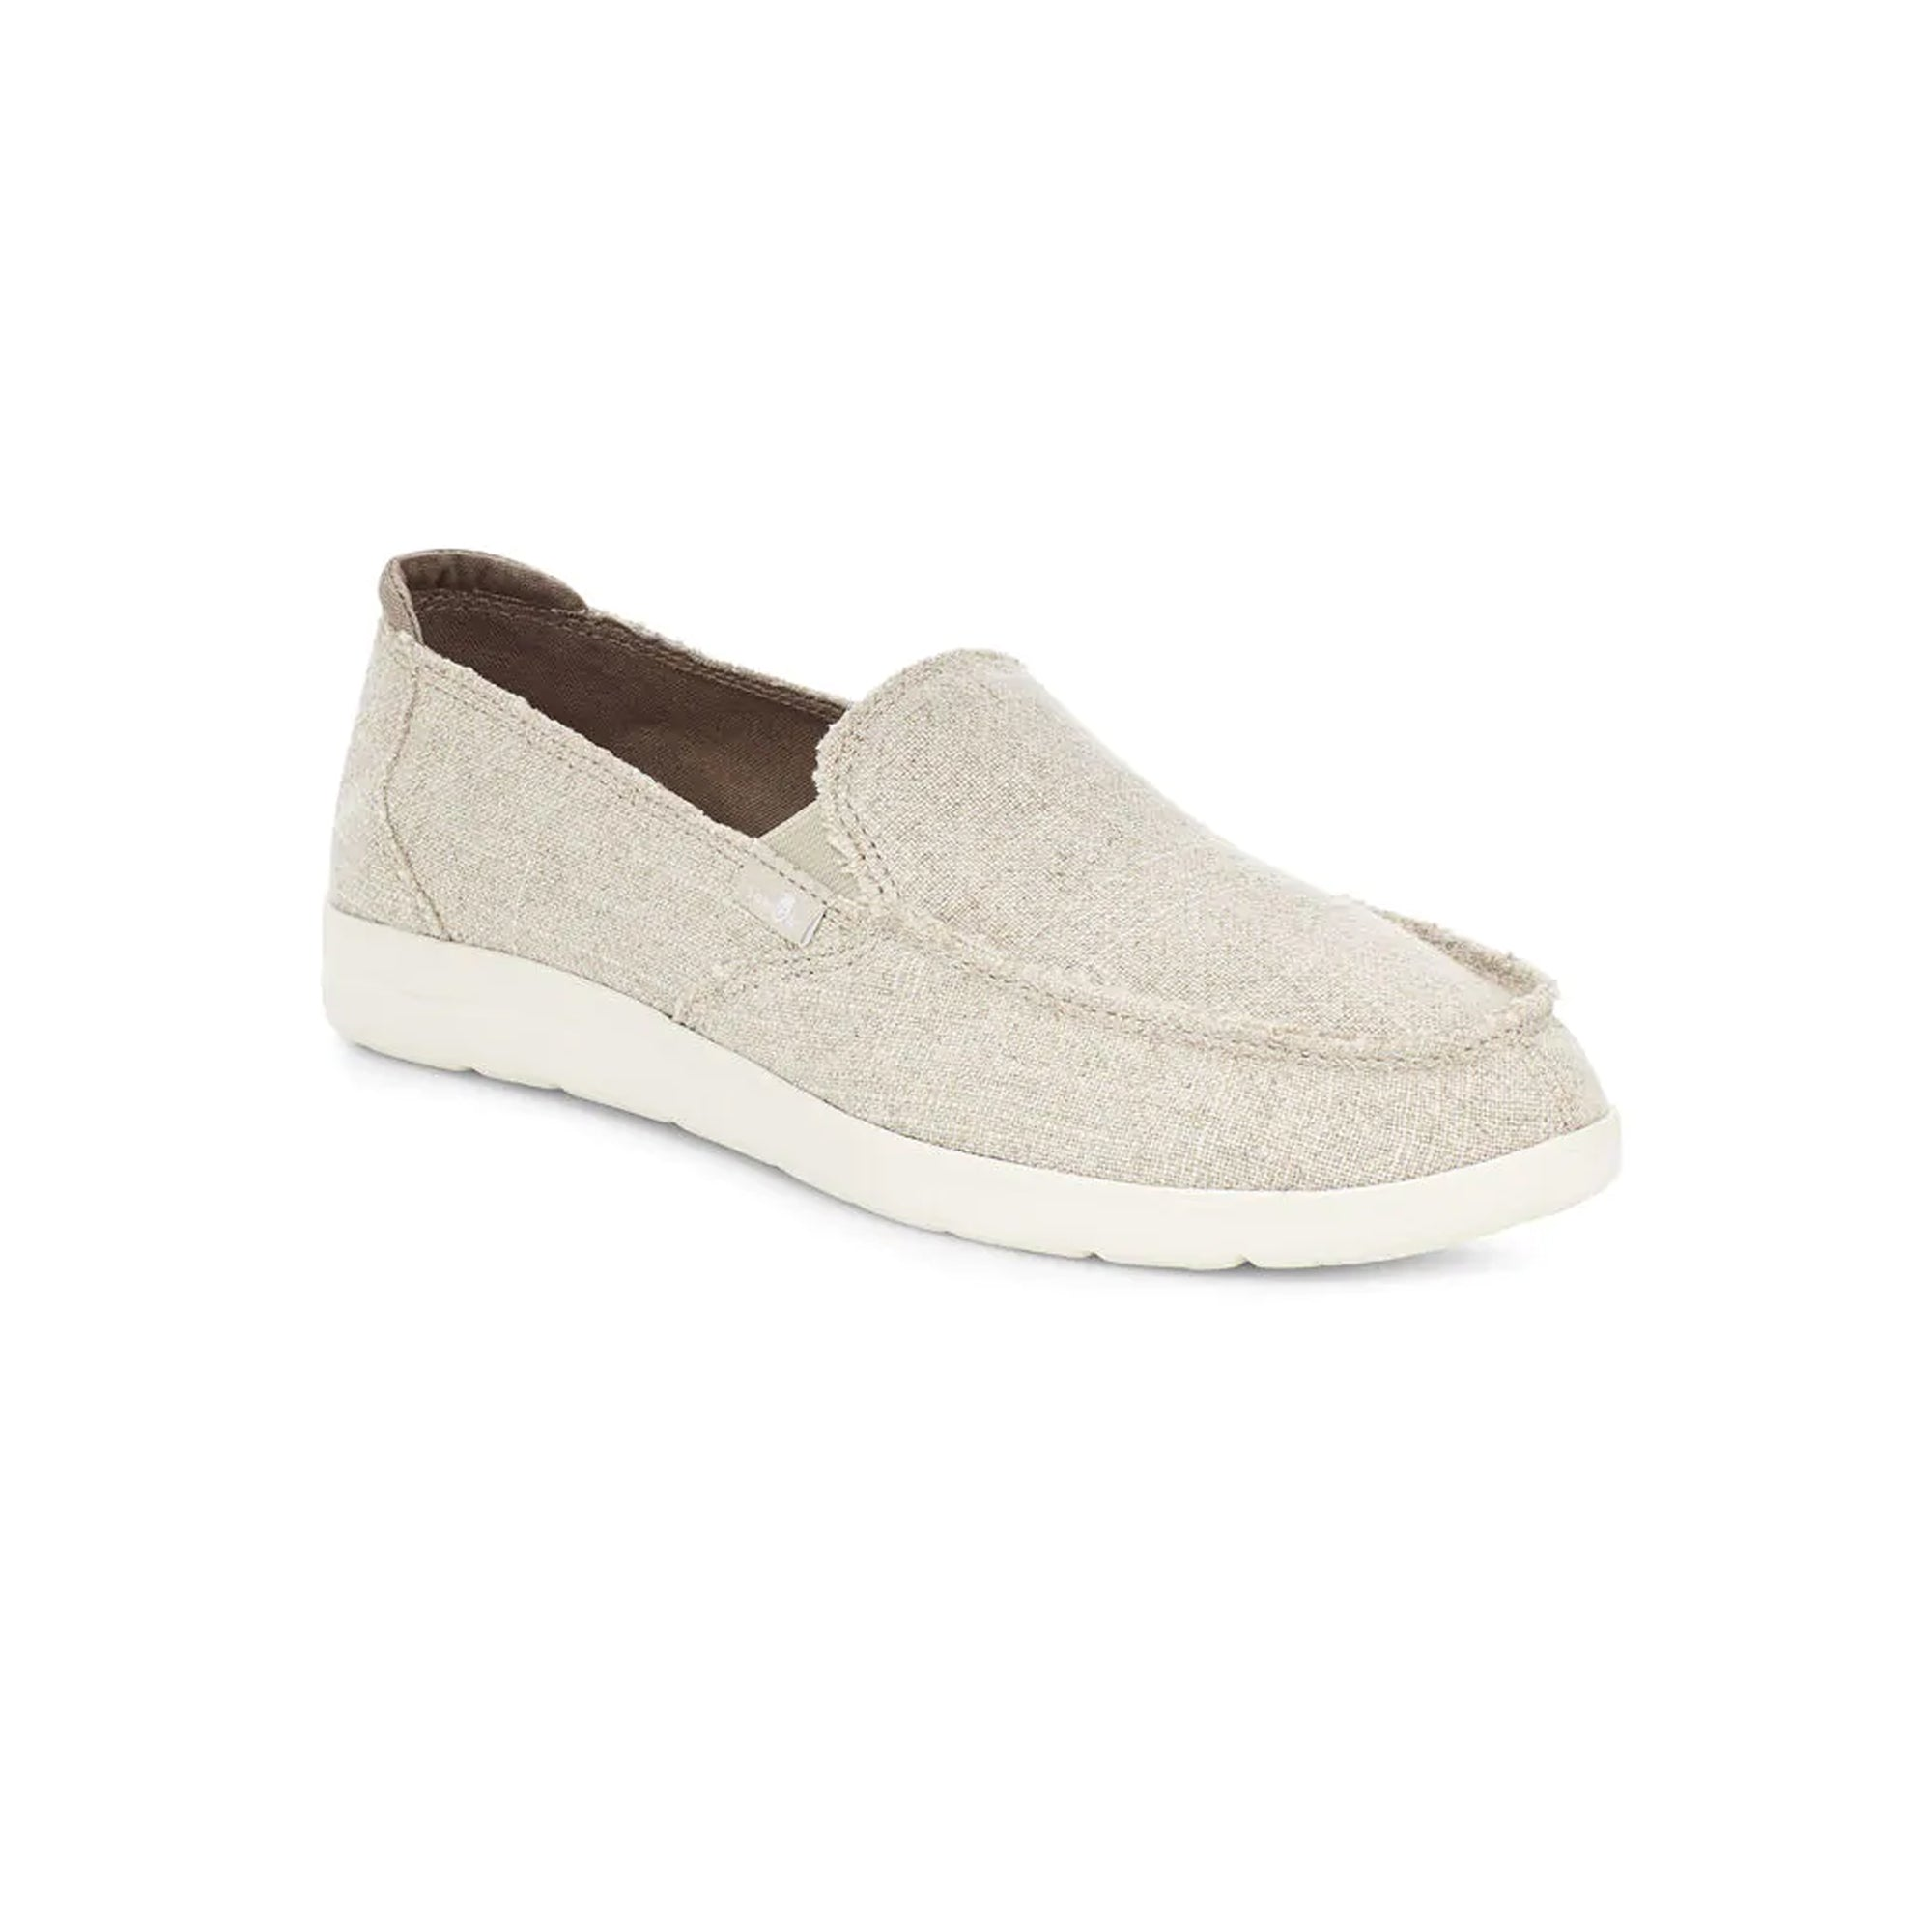 Sanuk Donna Lite TX Women's Shoes